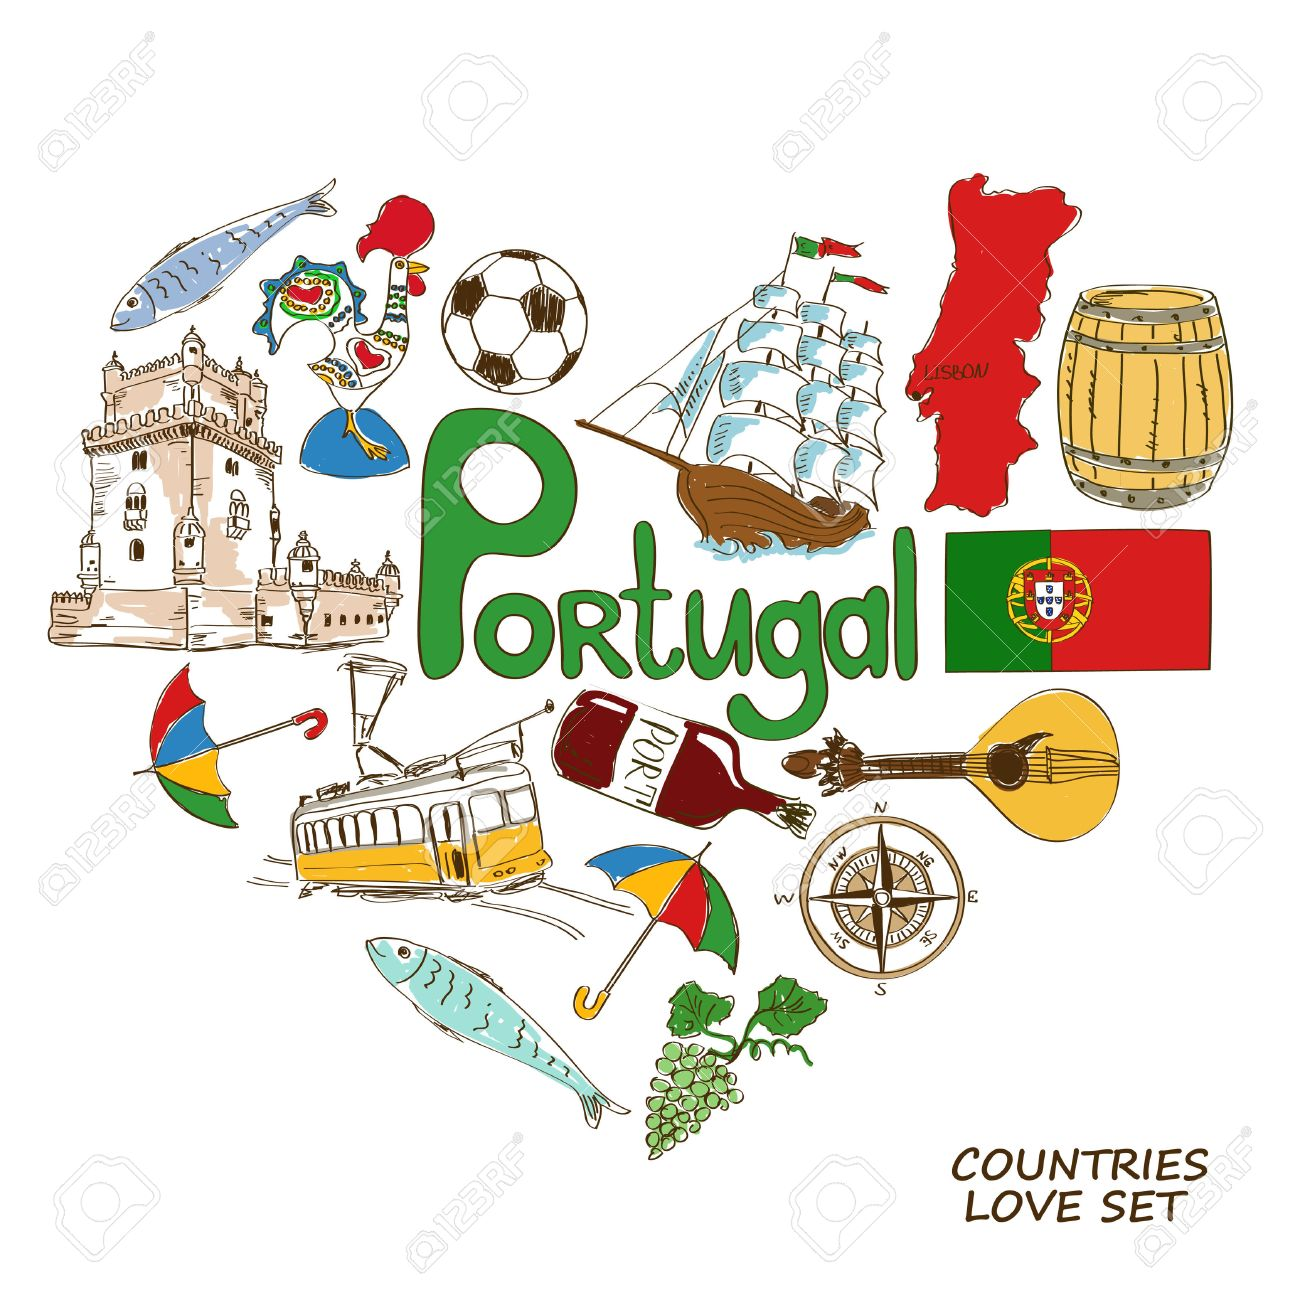 2,101 Portugal Culture Stock Vector Illustration And Royalty Free ...